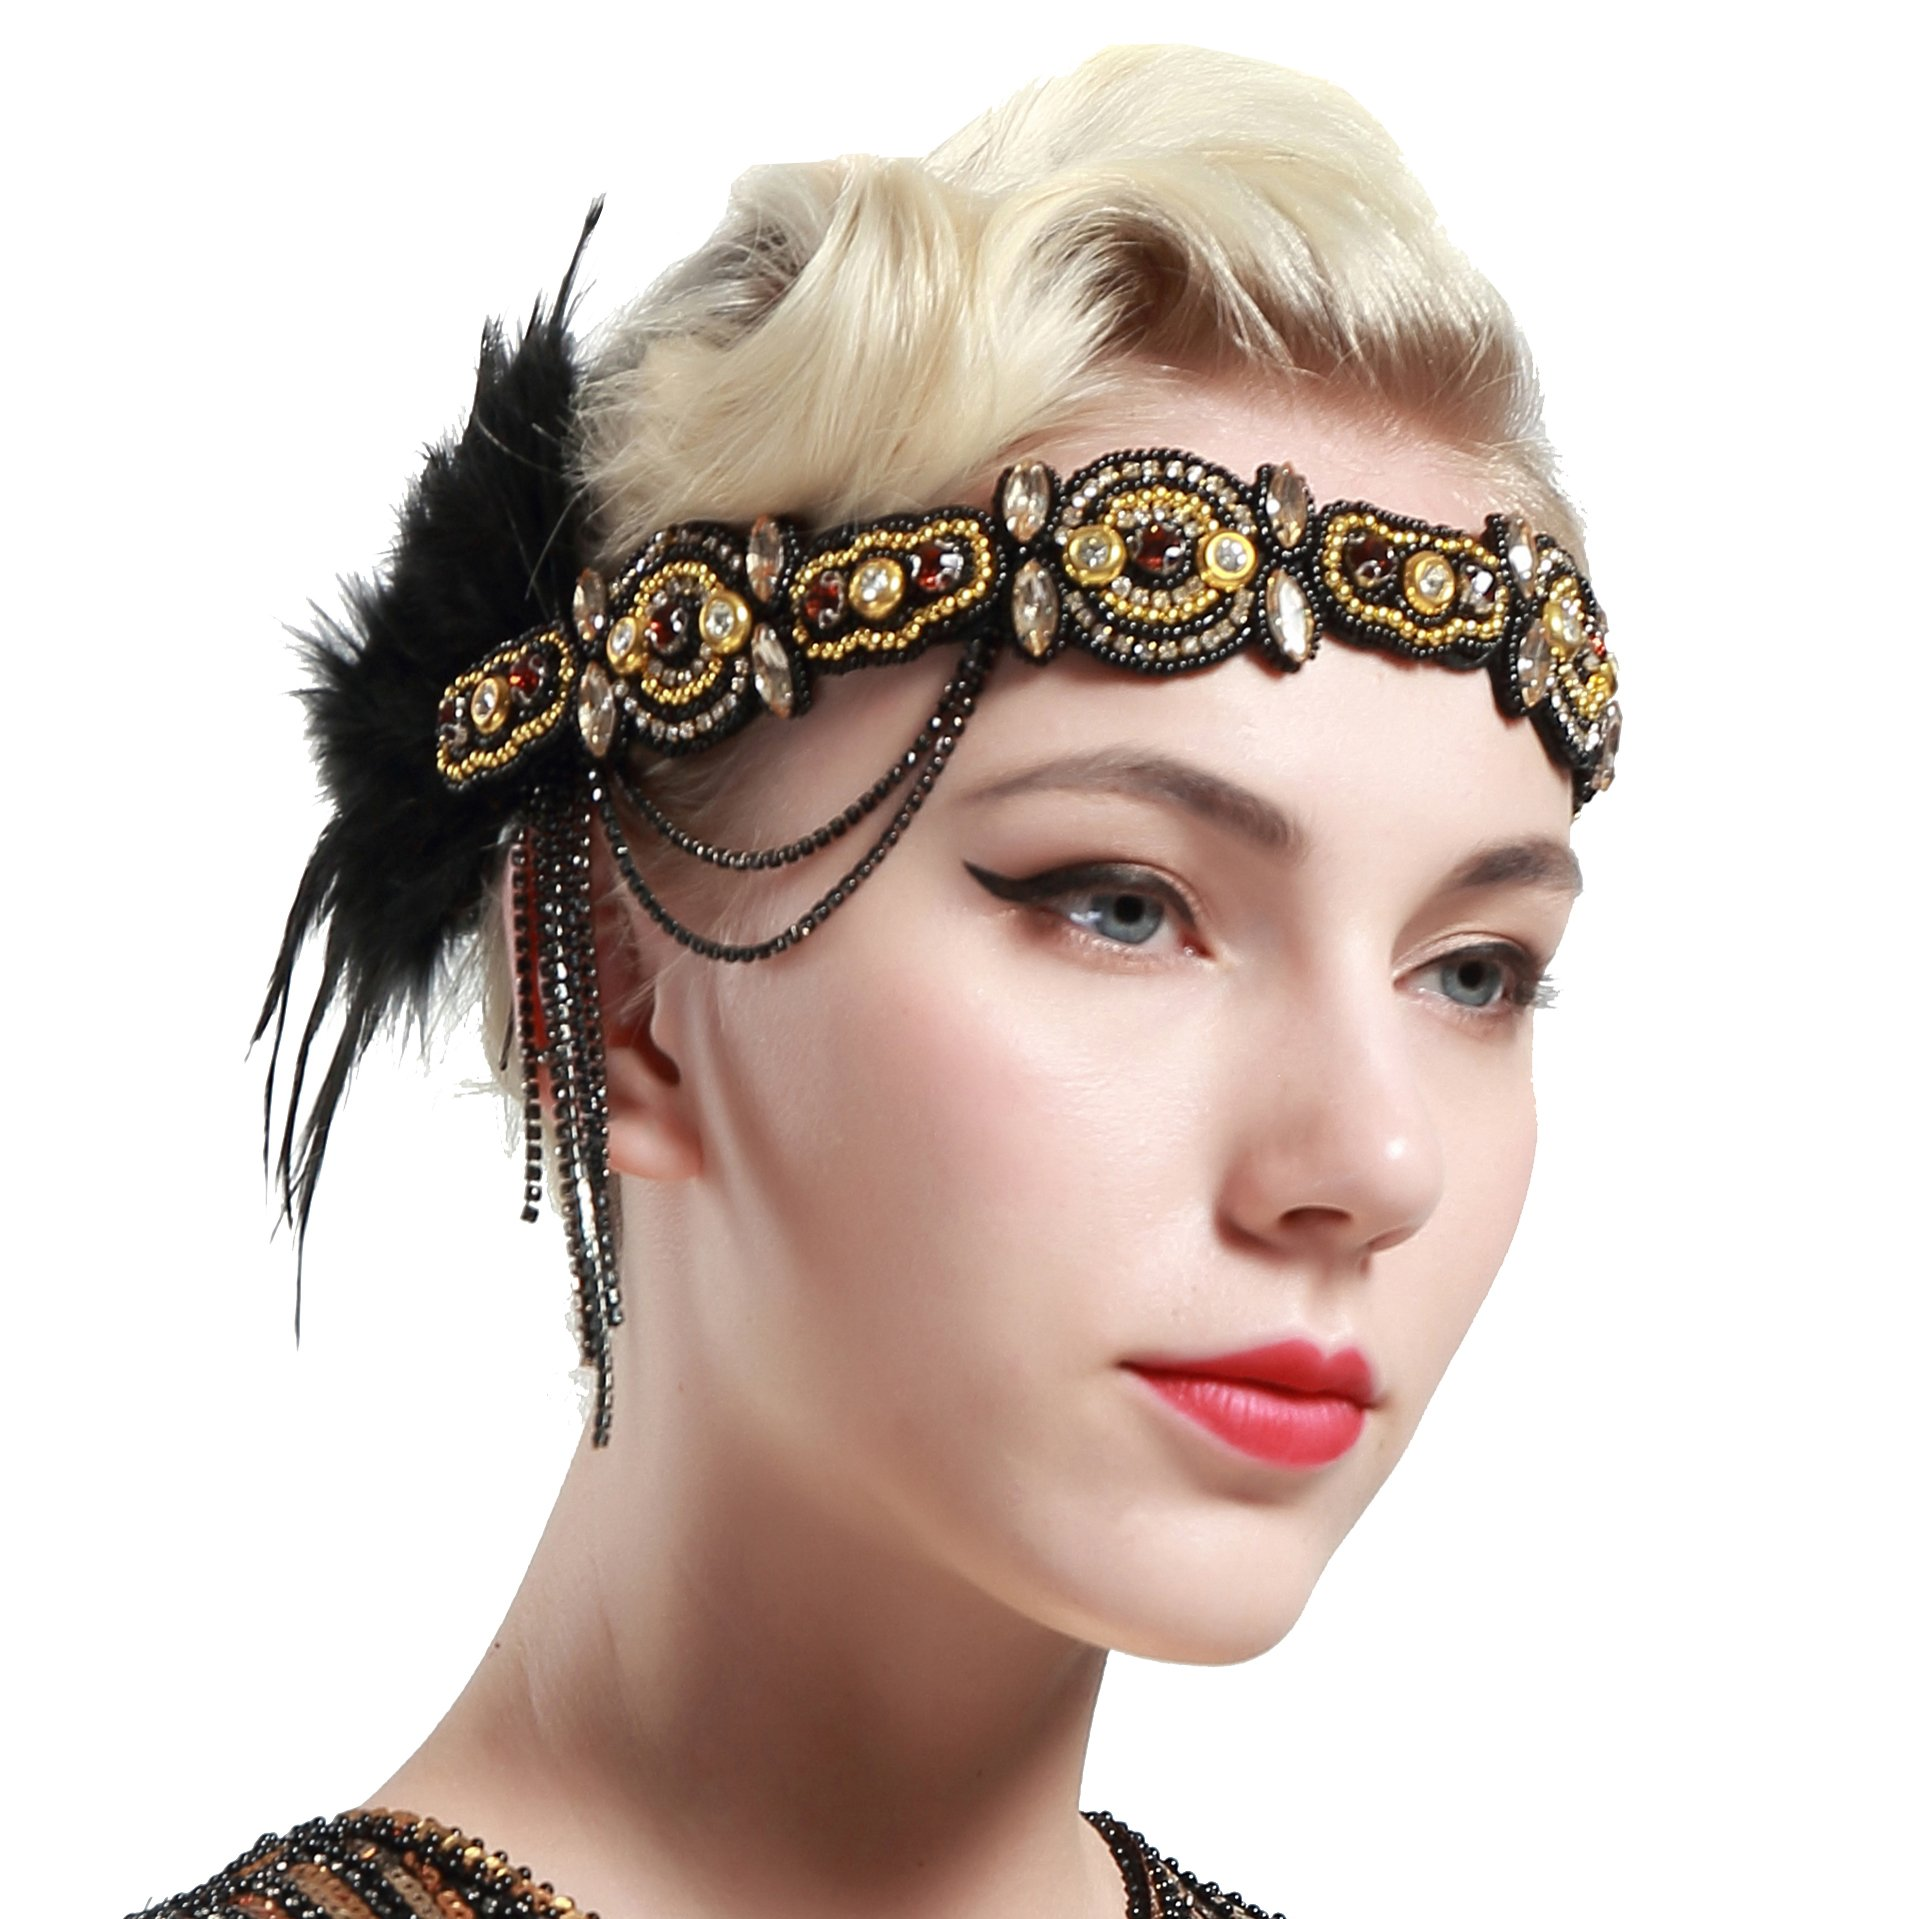 BABEYOND 1920s Flapper Headband Roaring 20s Gatsby Headpiece Black Feather Headband 1920s Flapper Hair Accessories